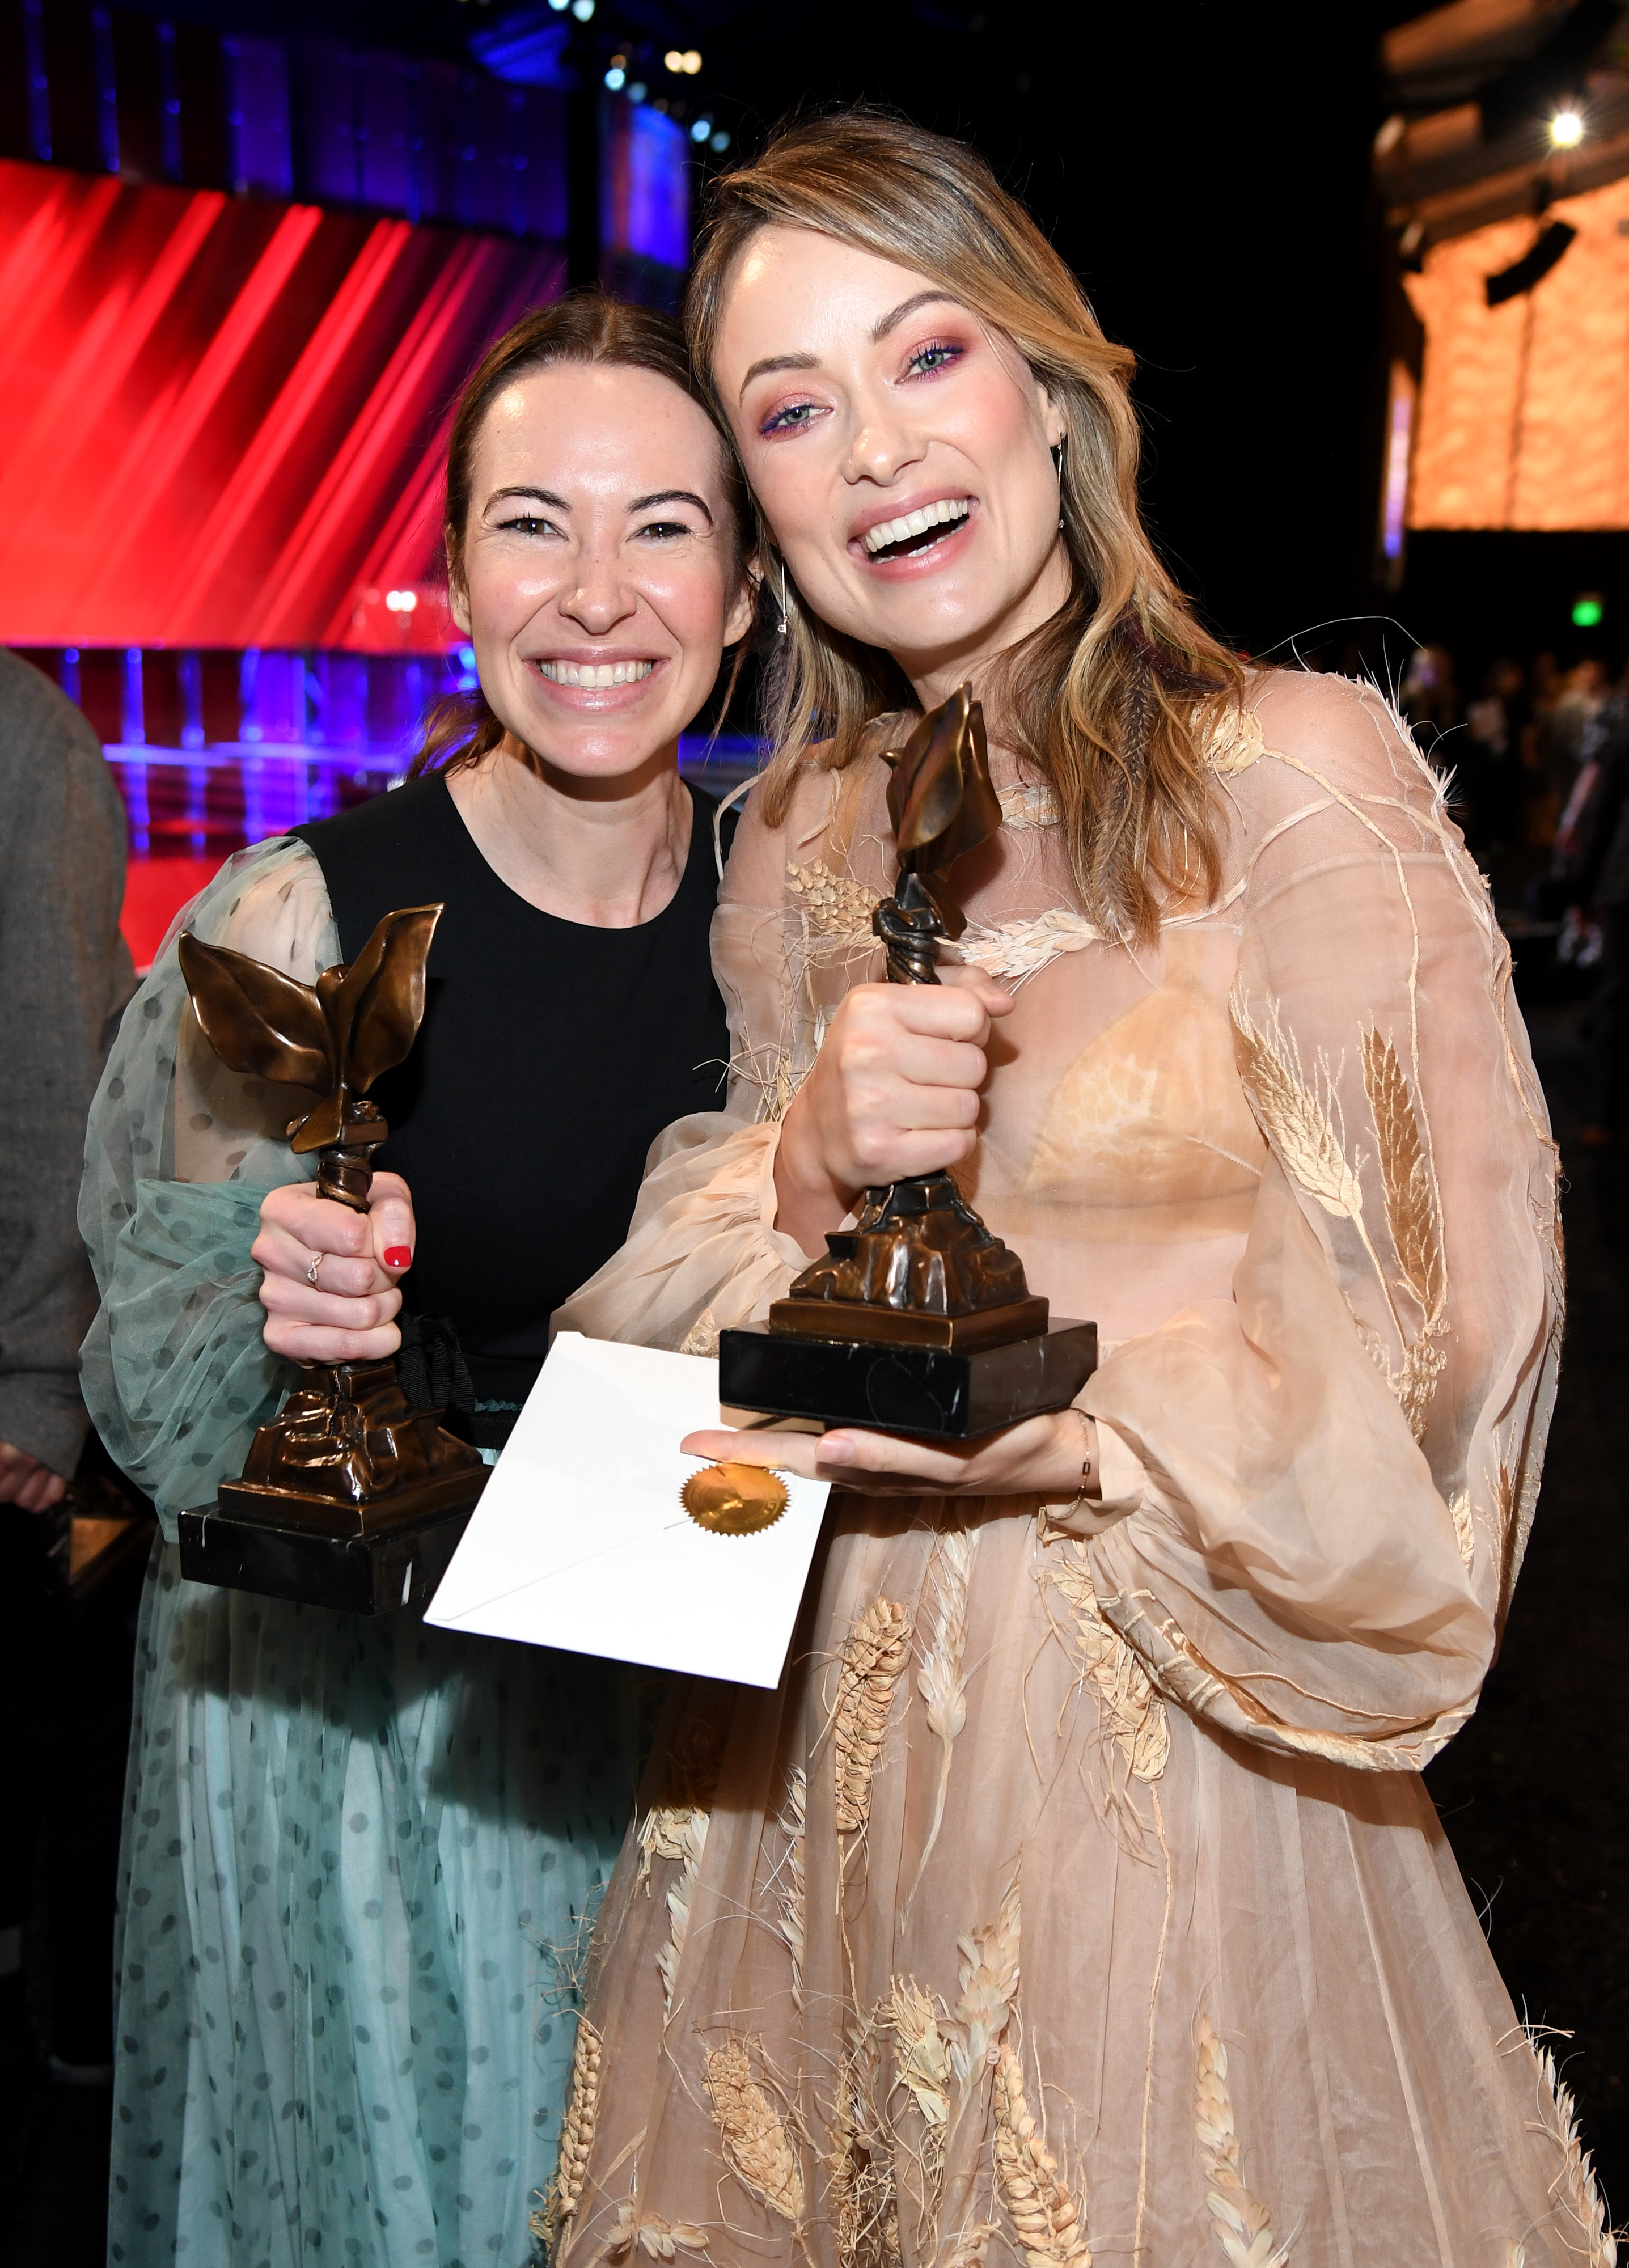 Olivia Wilde and Katie Silberman at an event for 35th Film Independent Spirit Awards (2020)